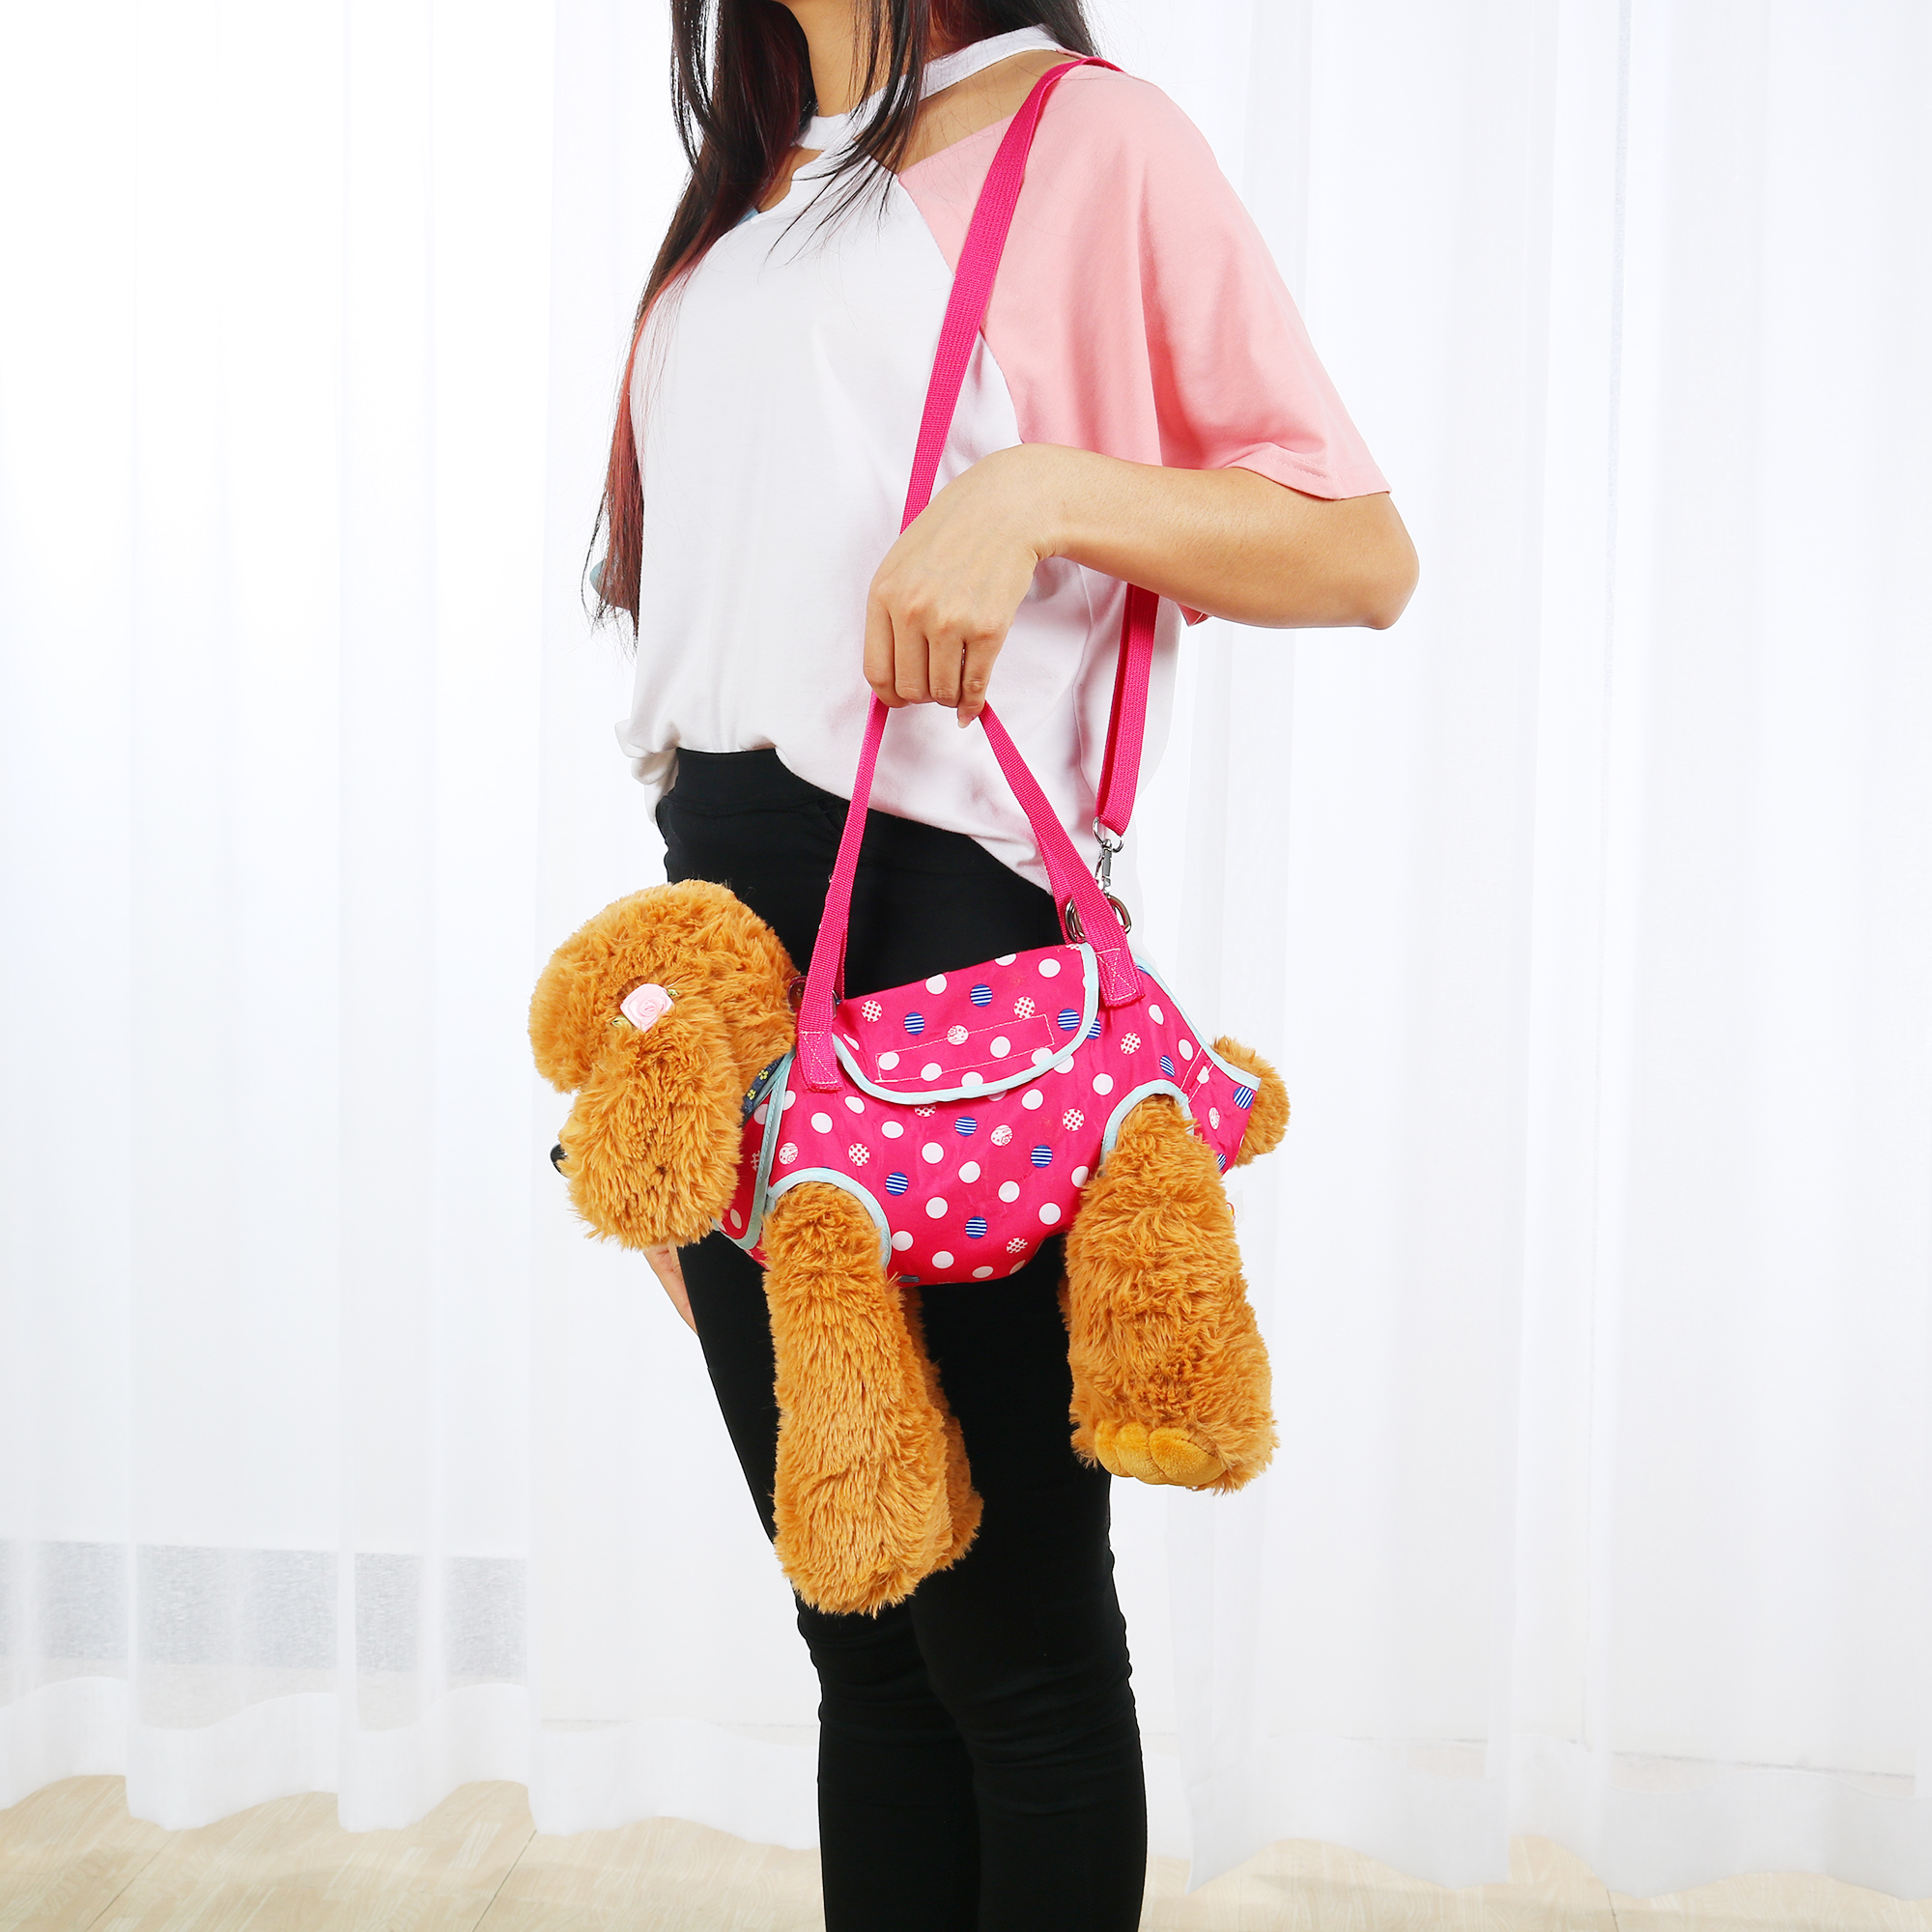 Pet Carrier Backpack, Puppy Holder, Pouch Single Shoulder Carry Tote L Fuchsia - image 3 of 7